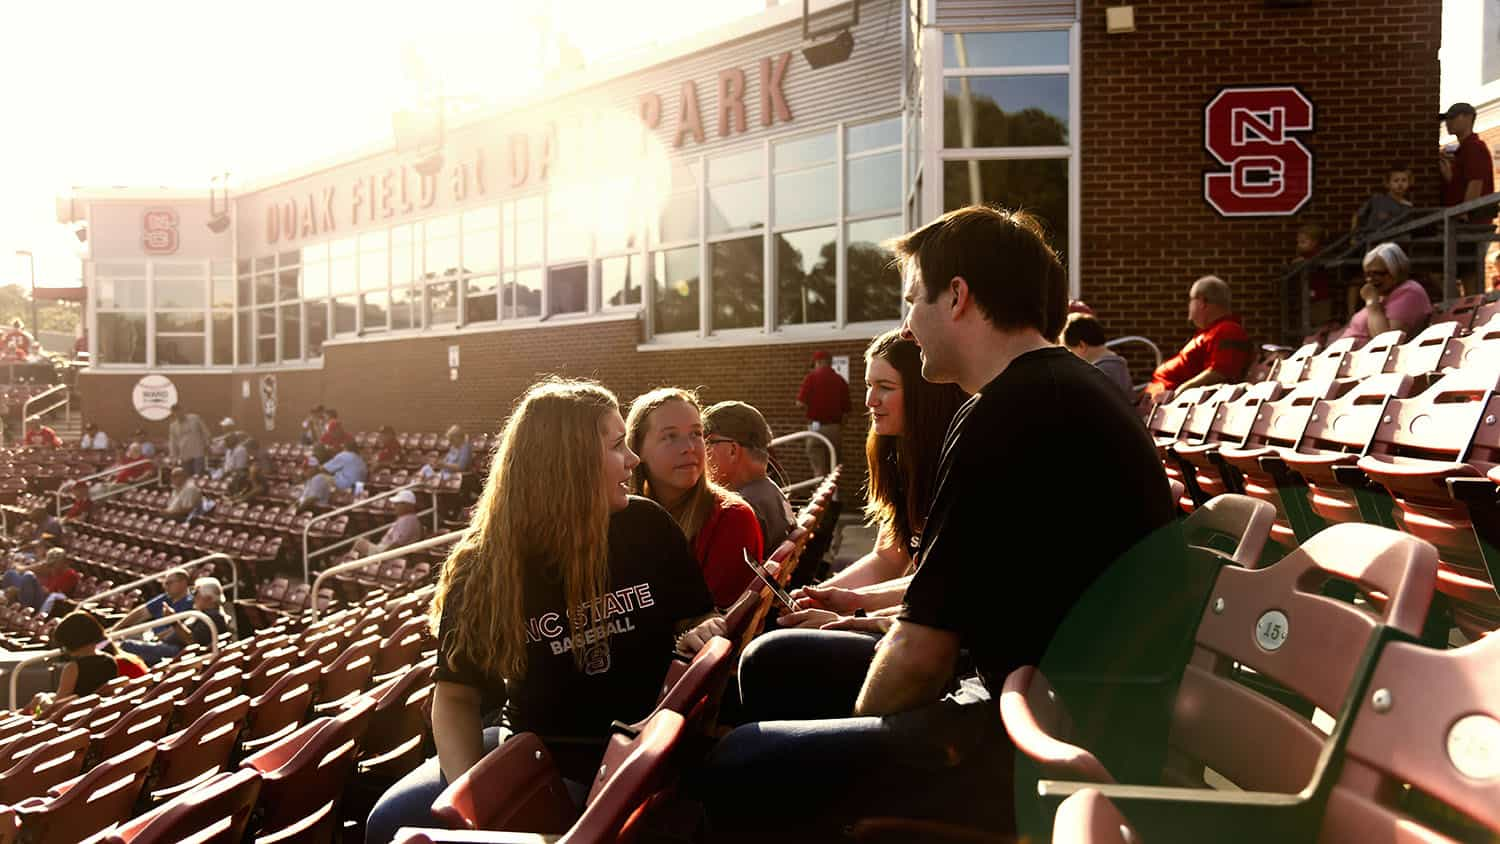 Students collaborating around laptop in baseball stadium stands